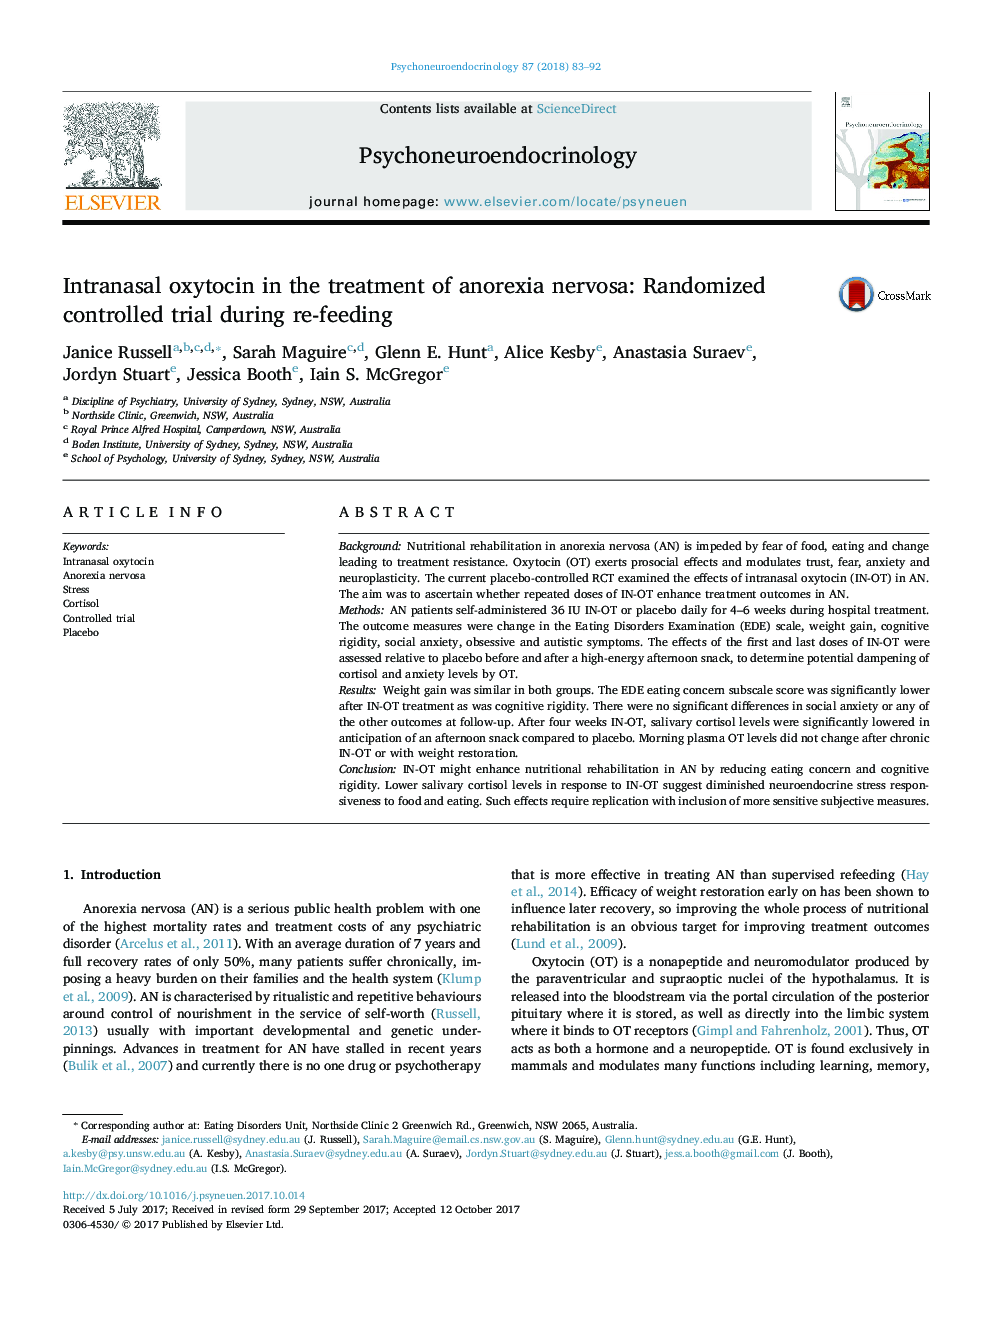 Intranasal oxytocin in the treatment of anorexia nervosa: Randomized controlled trial during re-feeding